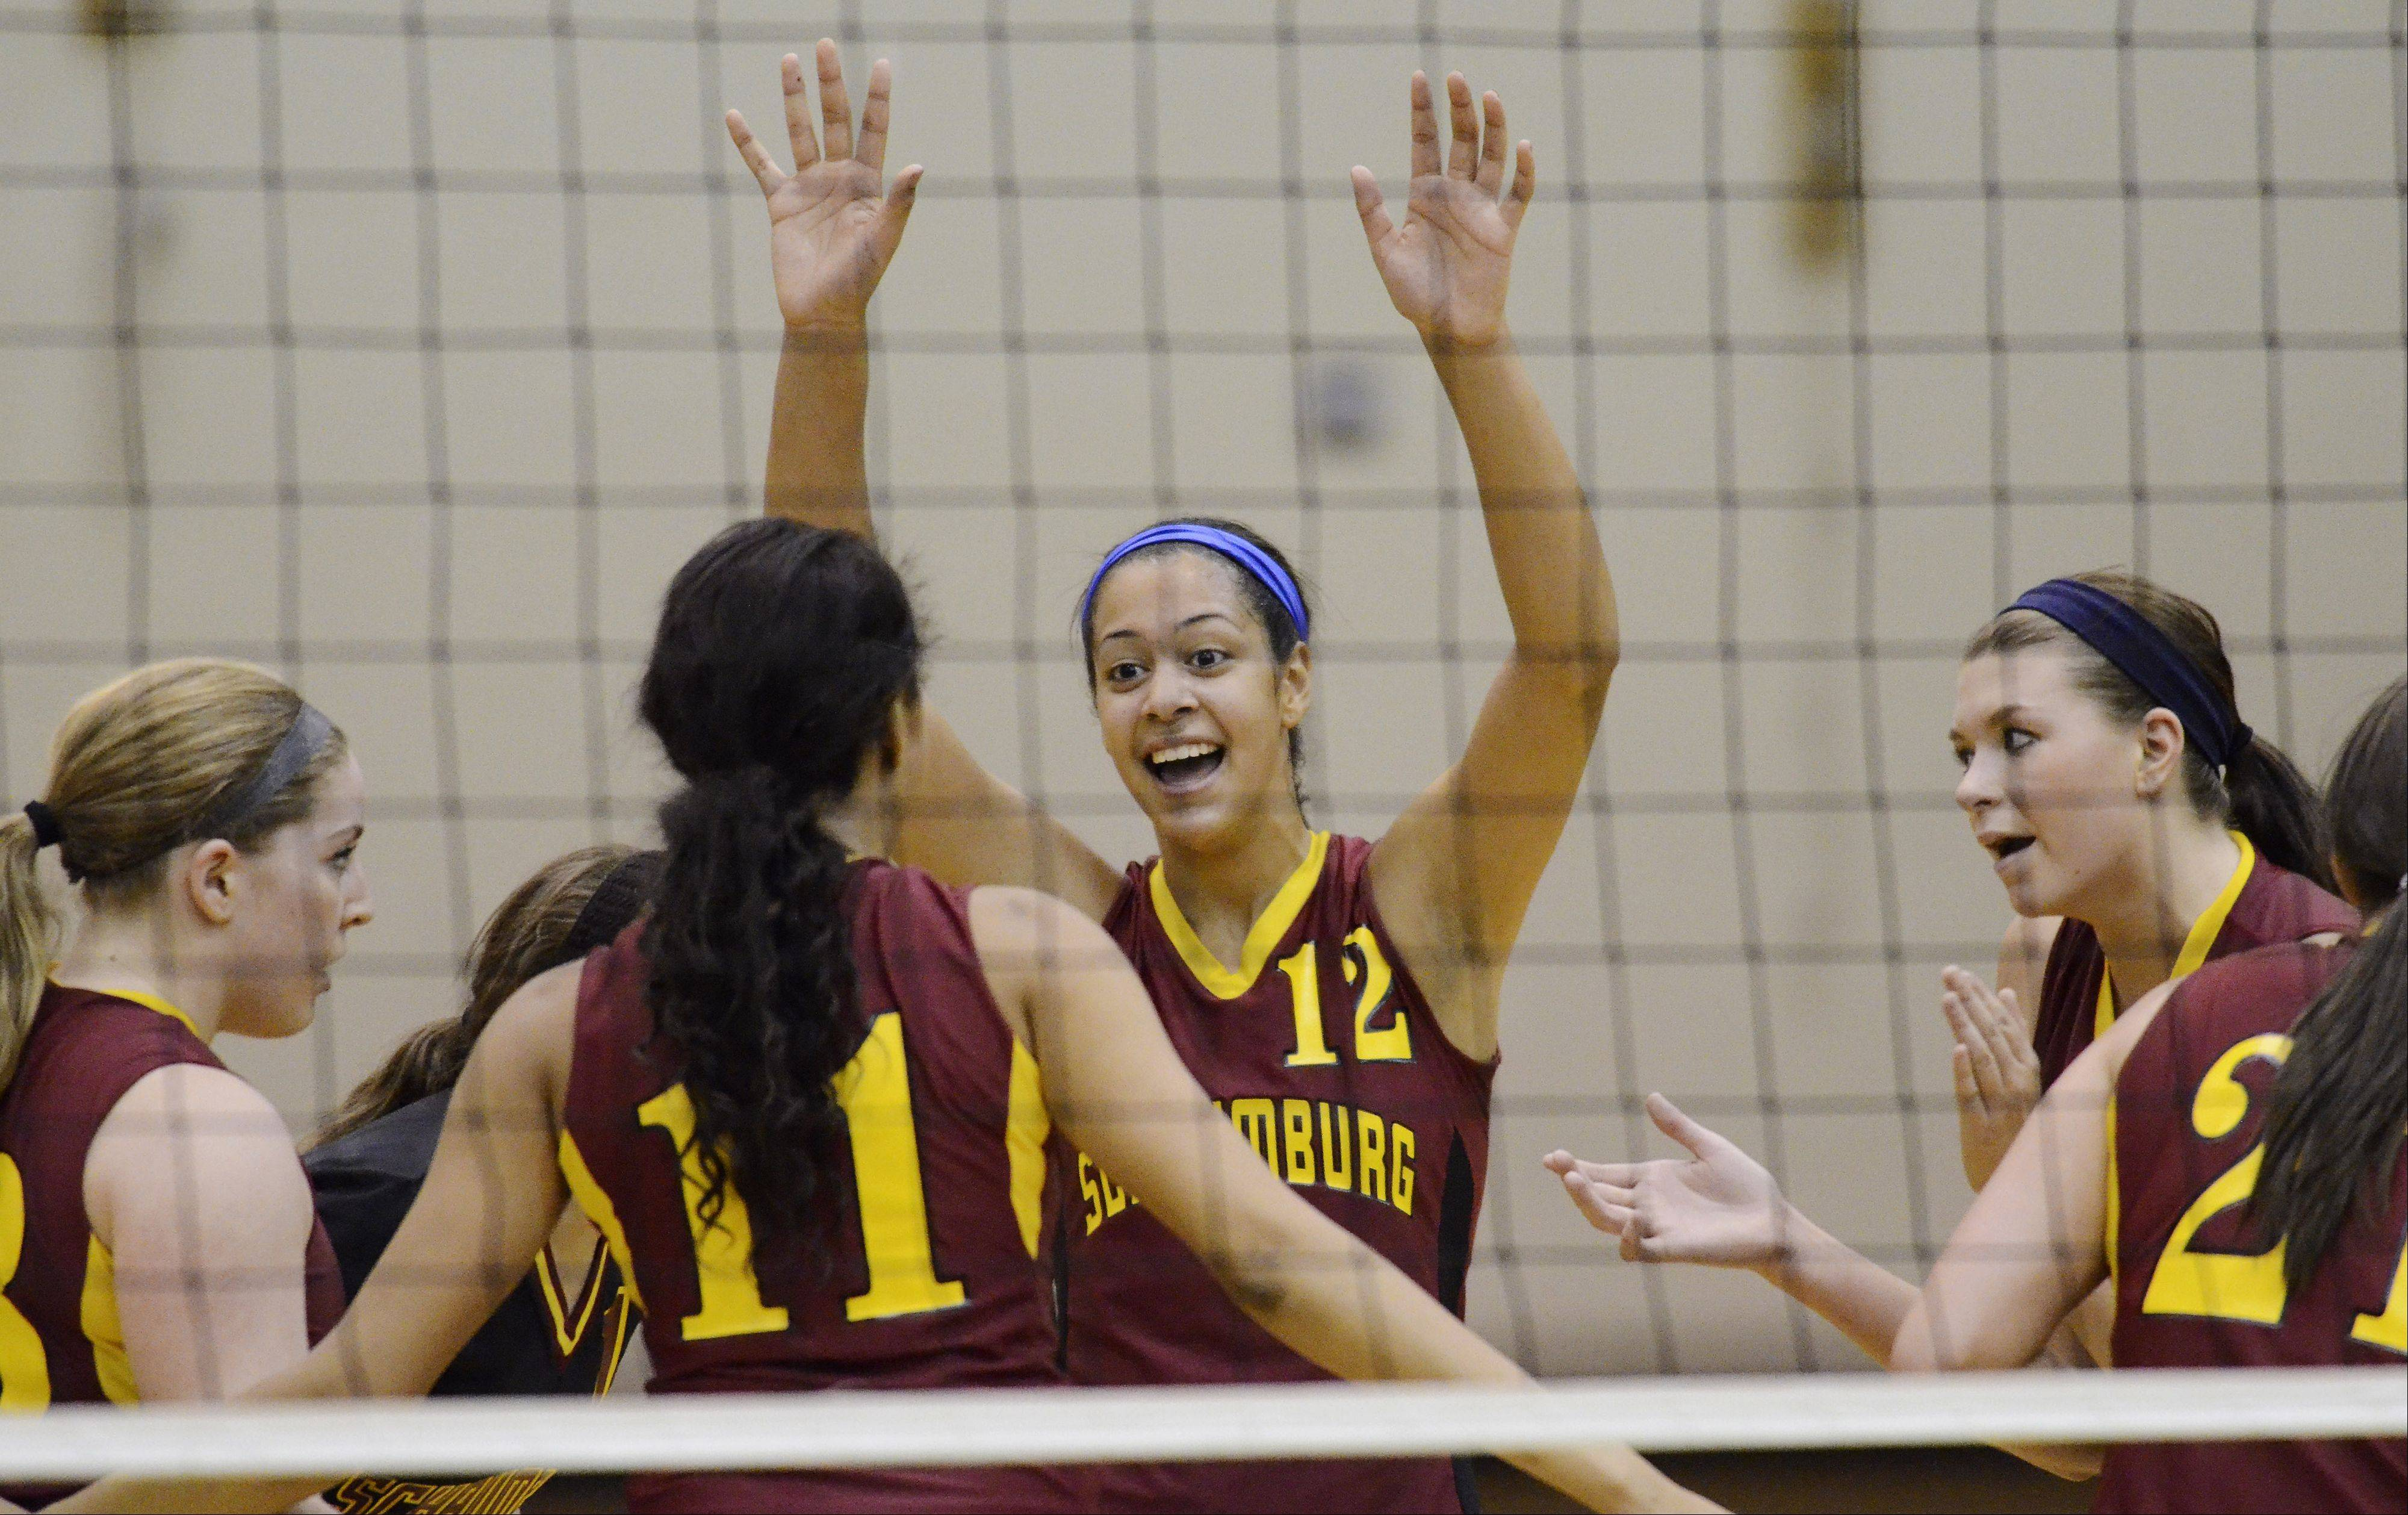 Schaumburg's Kiana Lewis, center, celebrates with her teammates as the Saxons close in on a victory against Barrington.